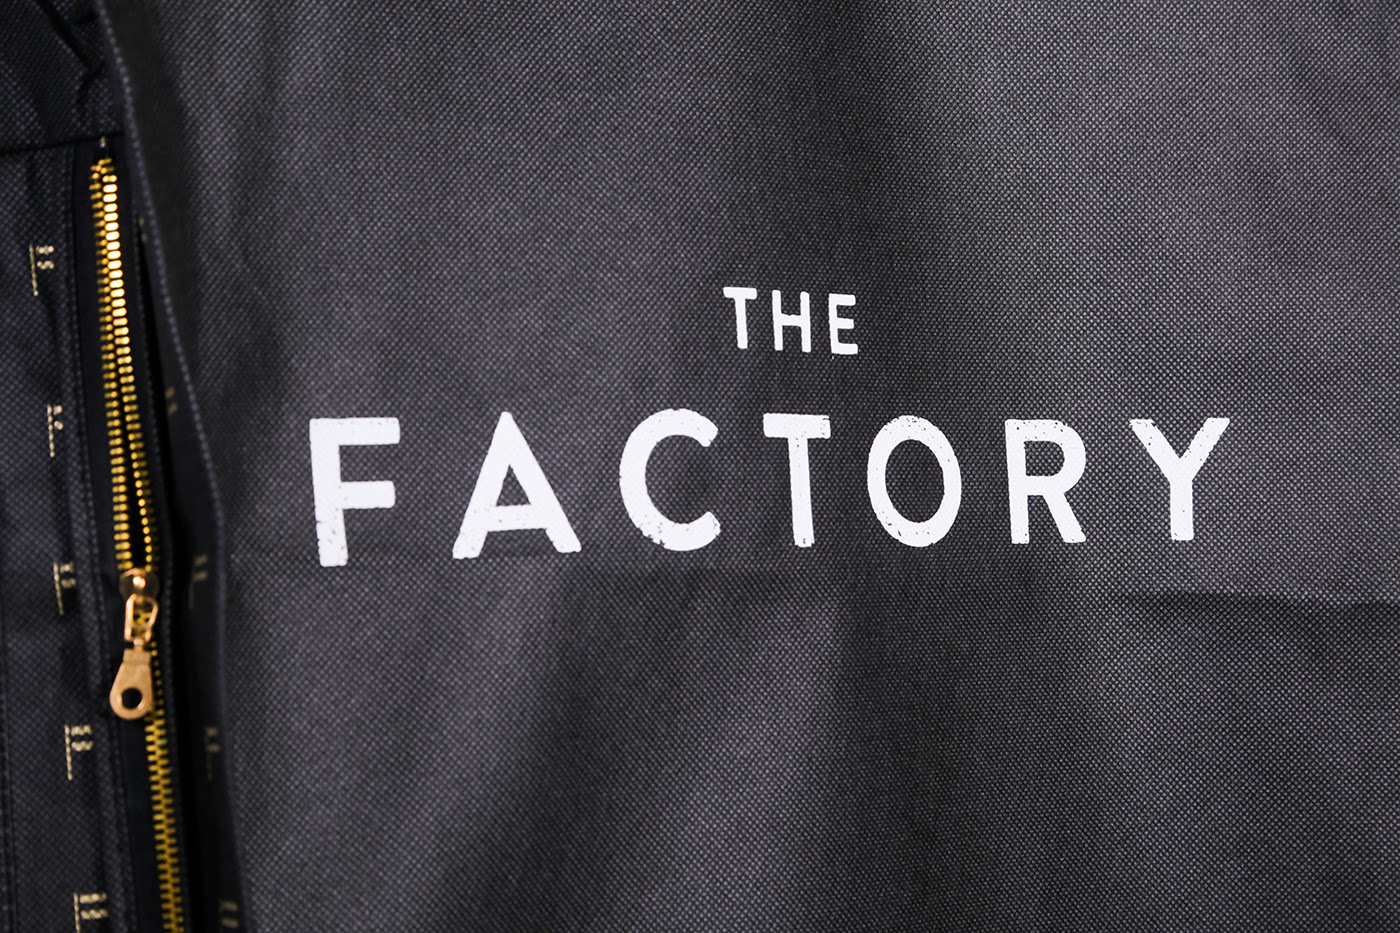 A suit cover for The Factory, Screen Printed